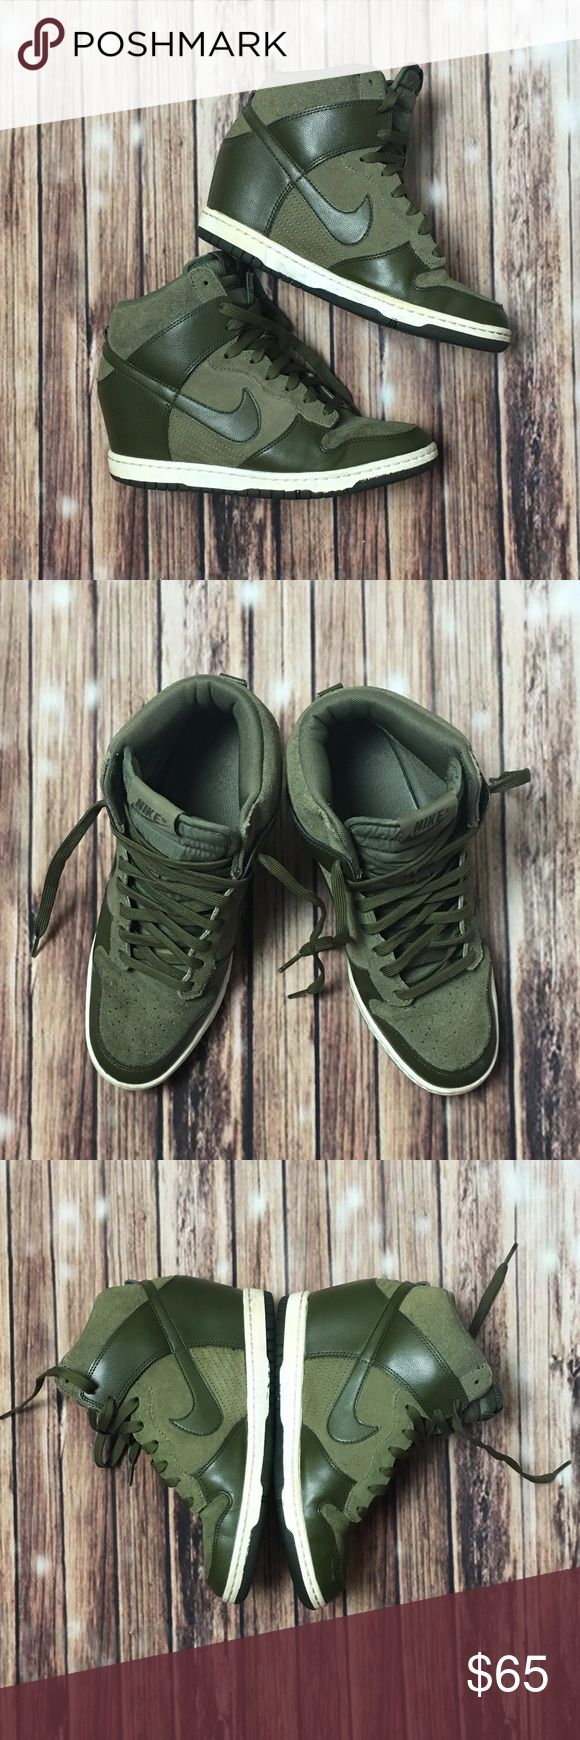 👟 Nike Dunk Sky Hii Wedge Sneaker Women's Nike Sky Hii Sneaker in Olive and Army Green. This sneaker is a size 9.5, runs true to size and is made of leather and nubuck material. Retail price: $125 + tax. These shoes are gently pre owned and still have many wears left. I'm open to reasonable offers, please check out the rest of my closet! xoxo Nike Shoes Sneakers